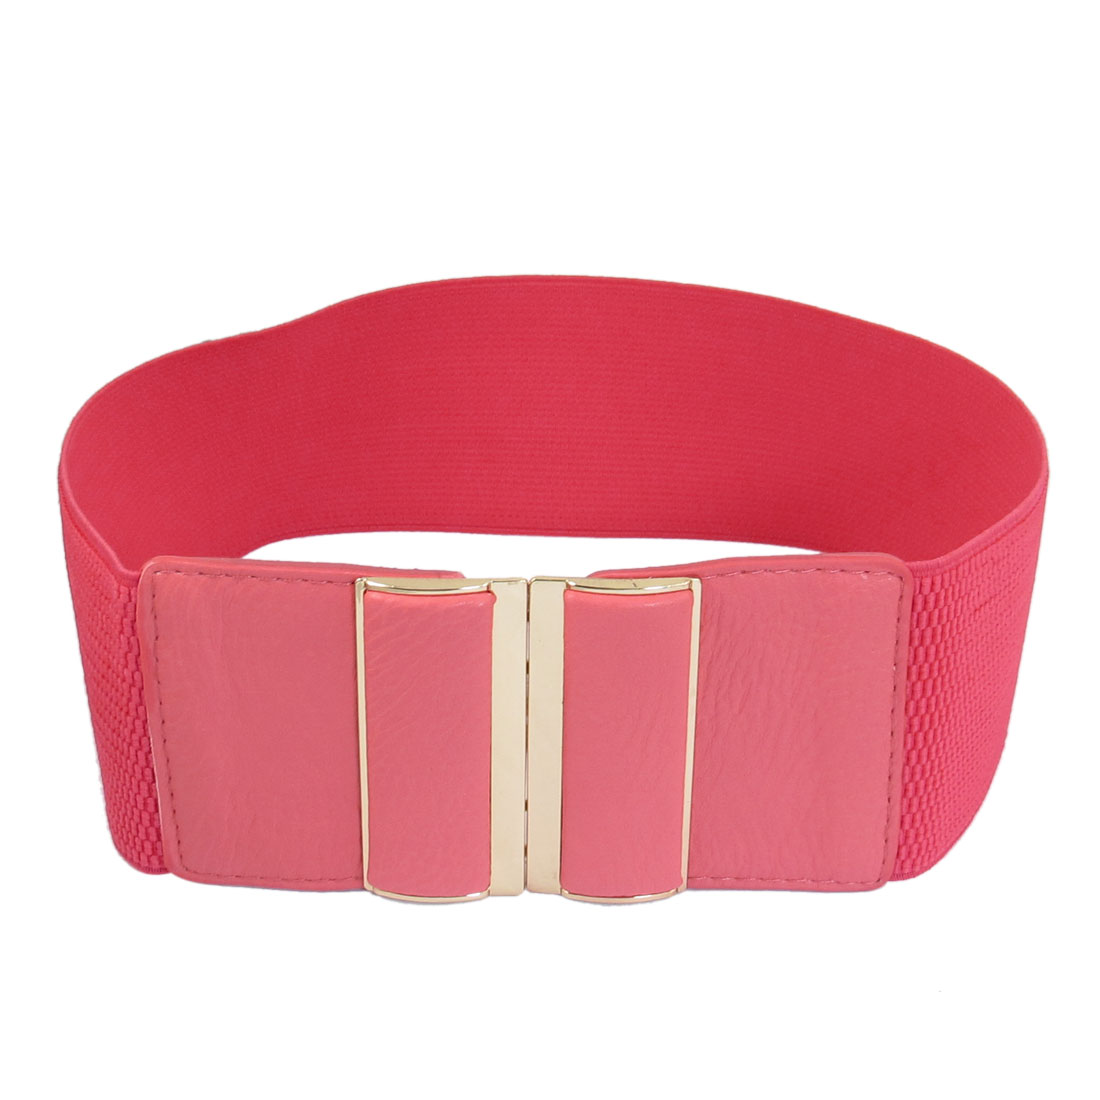 Light Red Faux Leather Elastic Band Interlocking Waist Belt 3 Inches Width for Lady